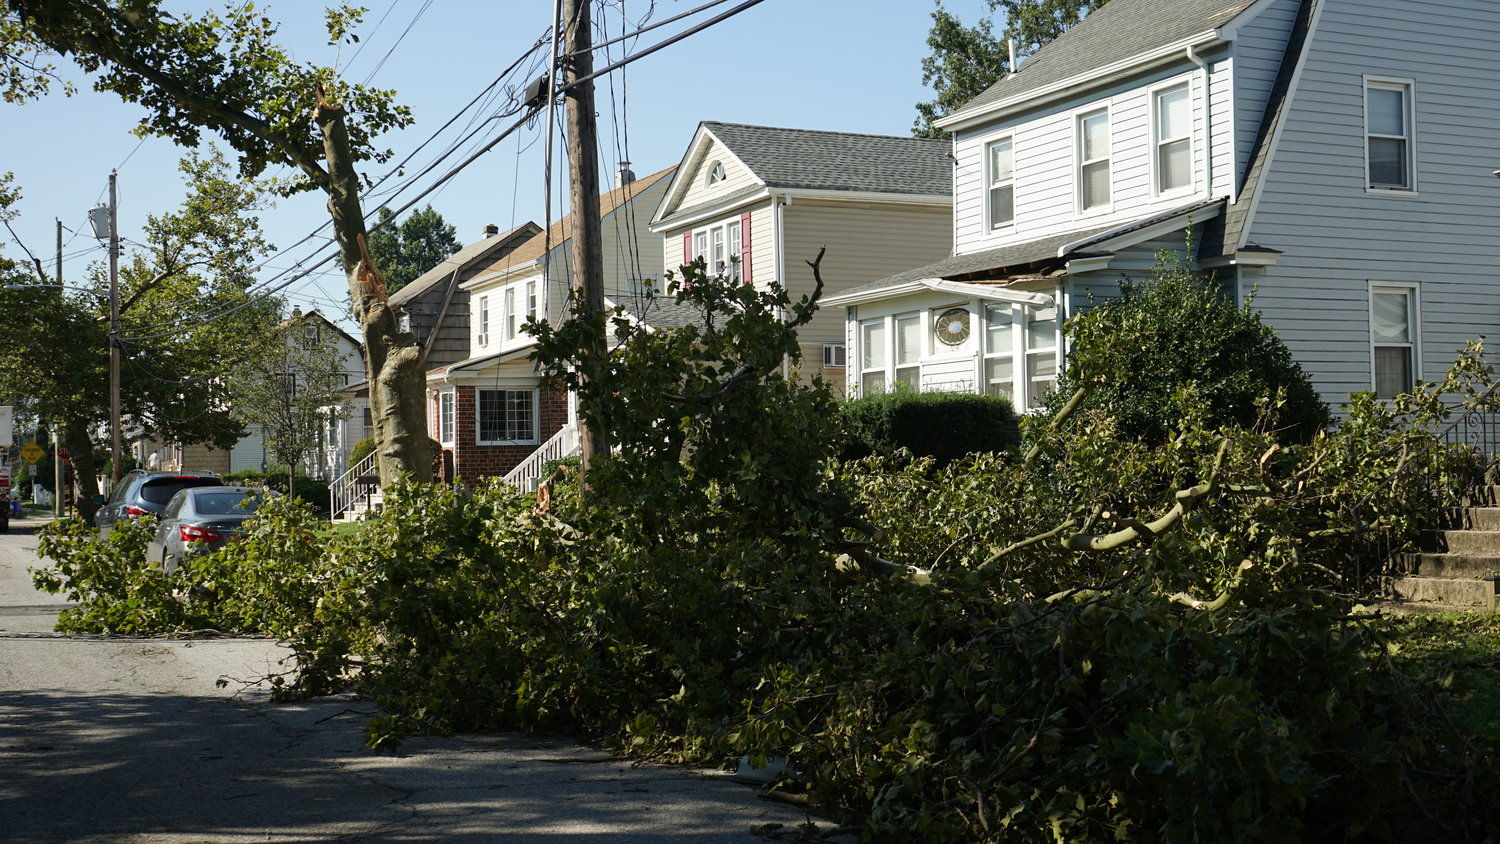 It was one of the harder hit areas in the neighborhood, with roughly half a dozen trees downed and power lines torn from multiple homes.